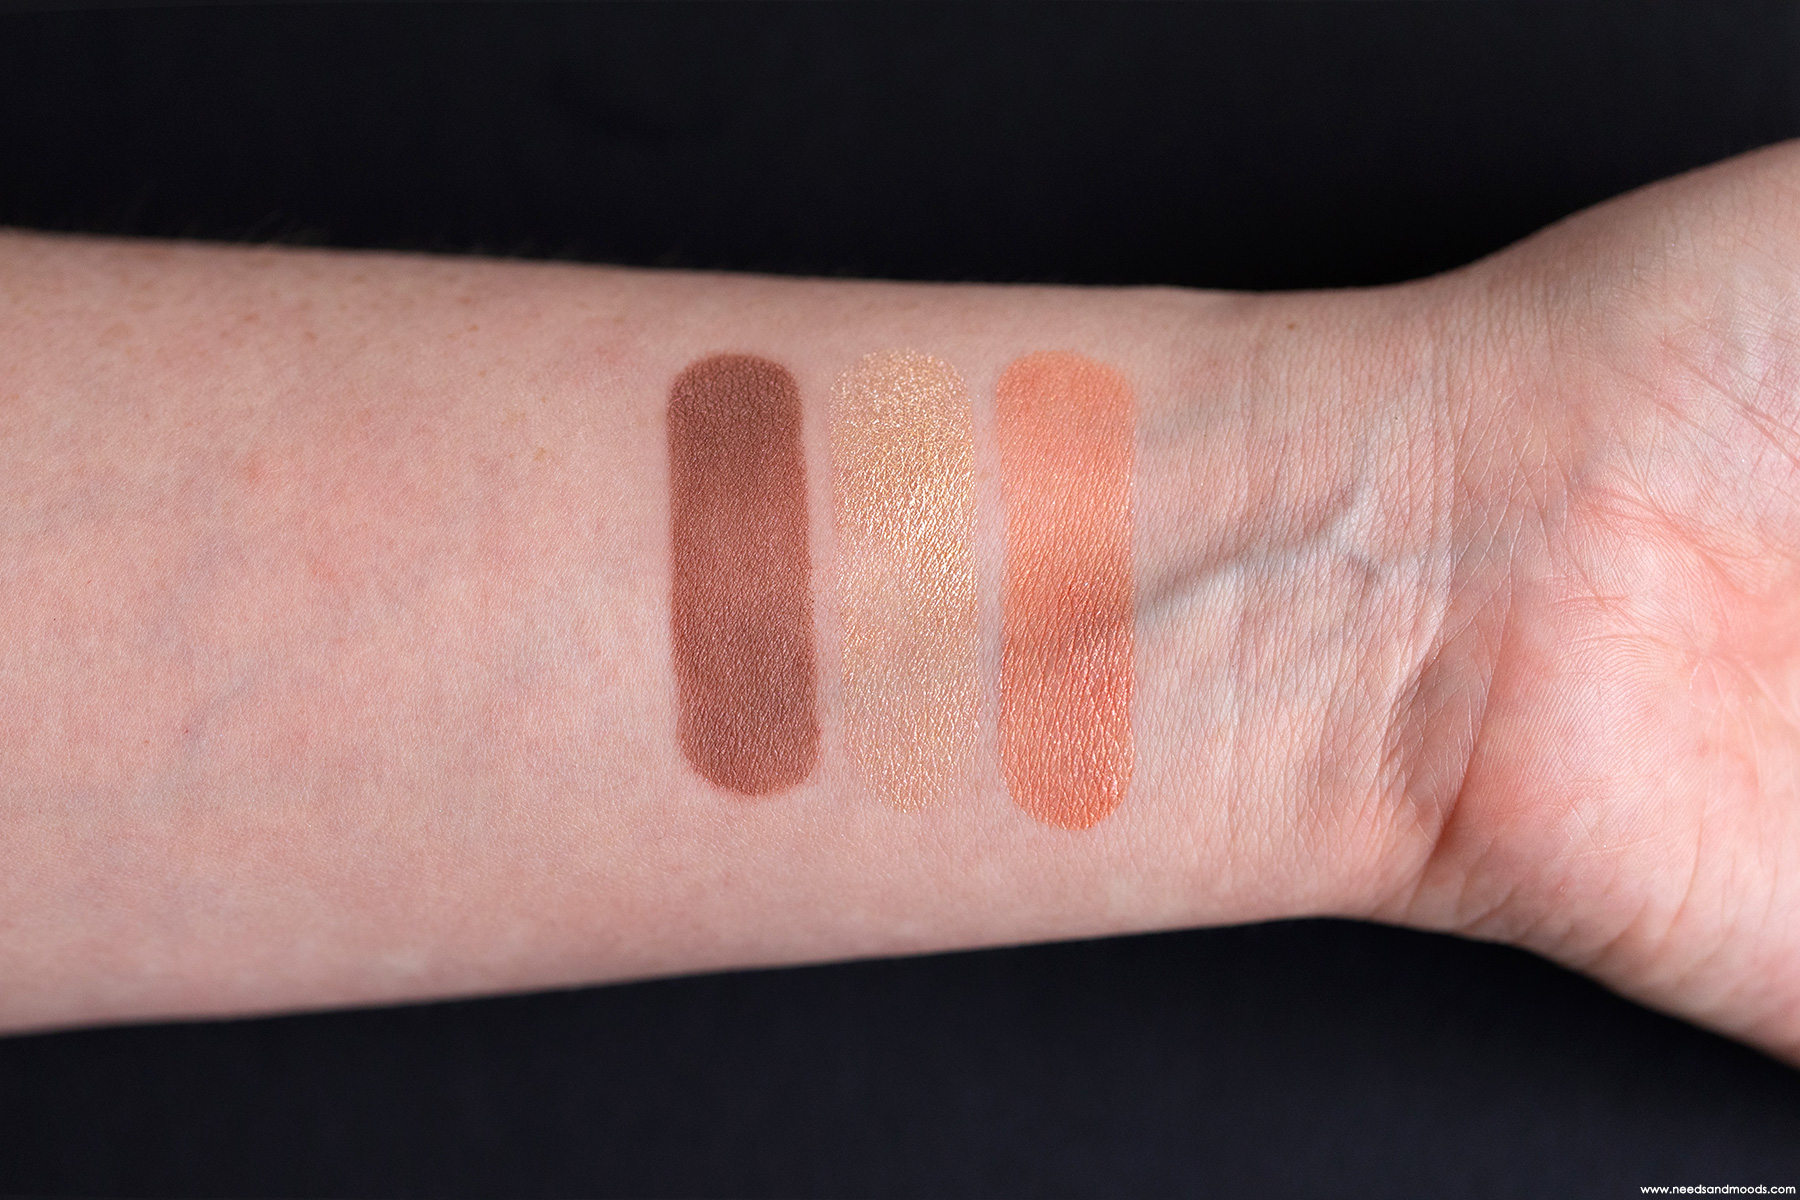 dior-3-couleurs-tri-o-blique-coral-canvas-swatch